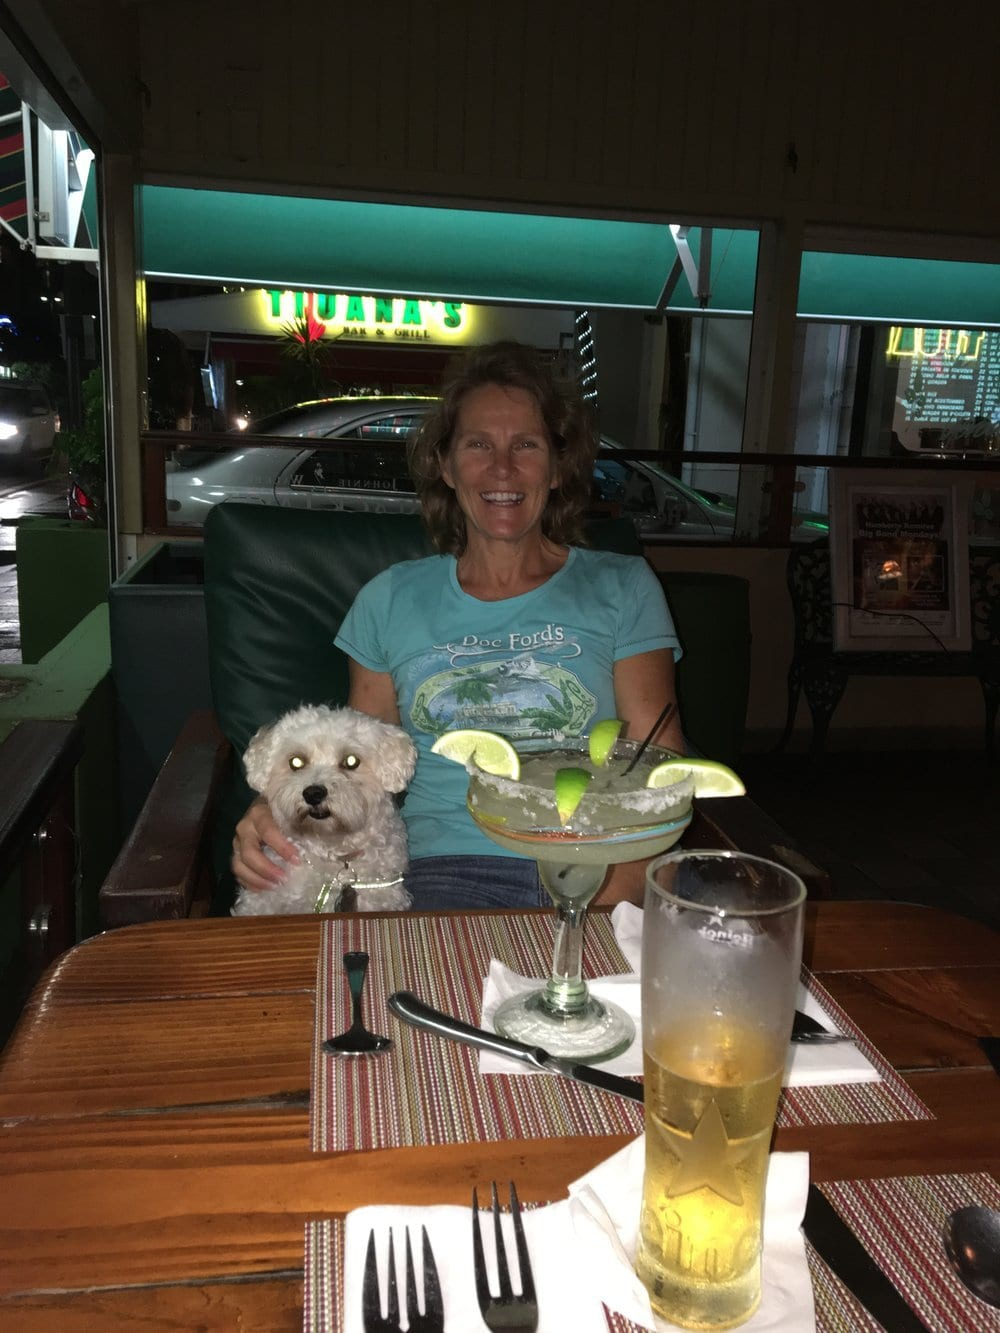 Deb and Maxwell the dog at a table with a margarita and beer